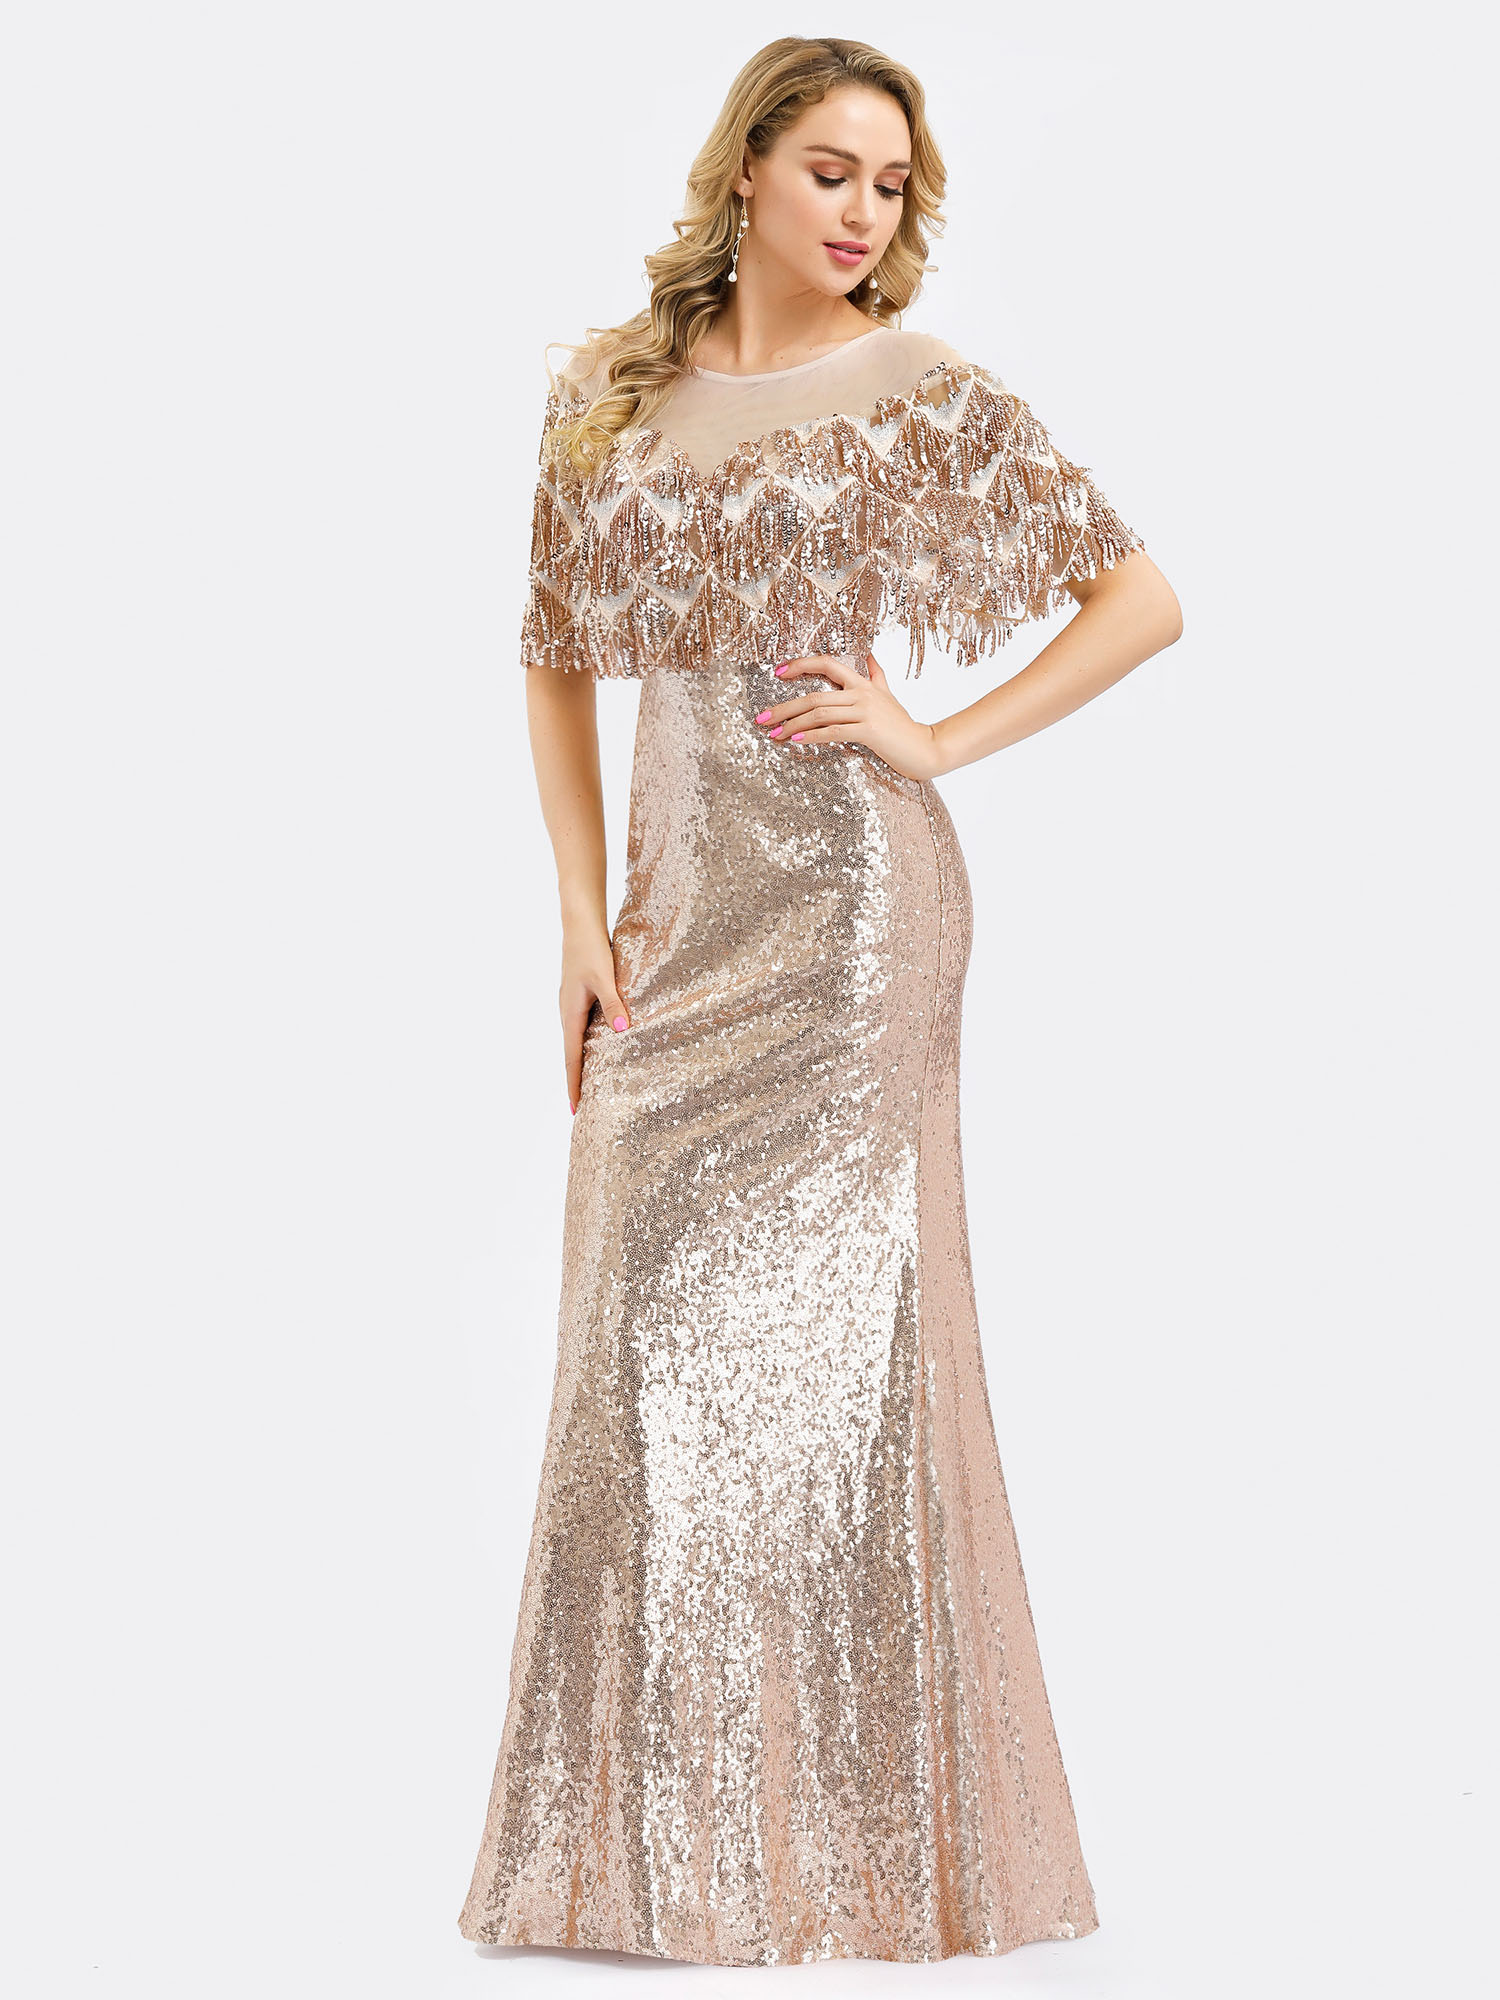 Ever-pretty-Formal-Celebrity-Party-Dresses-Mermaid-Evening-Cocktail-Prom-Gowns thumbnail 6